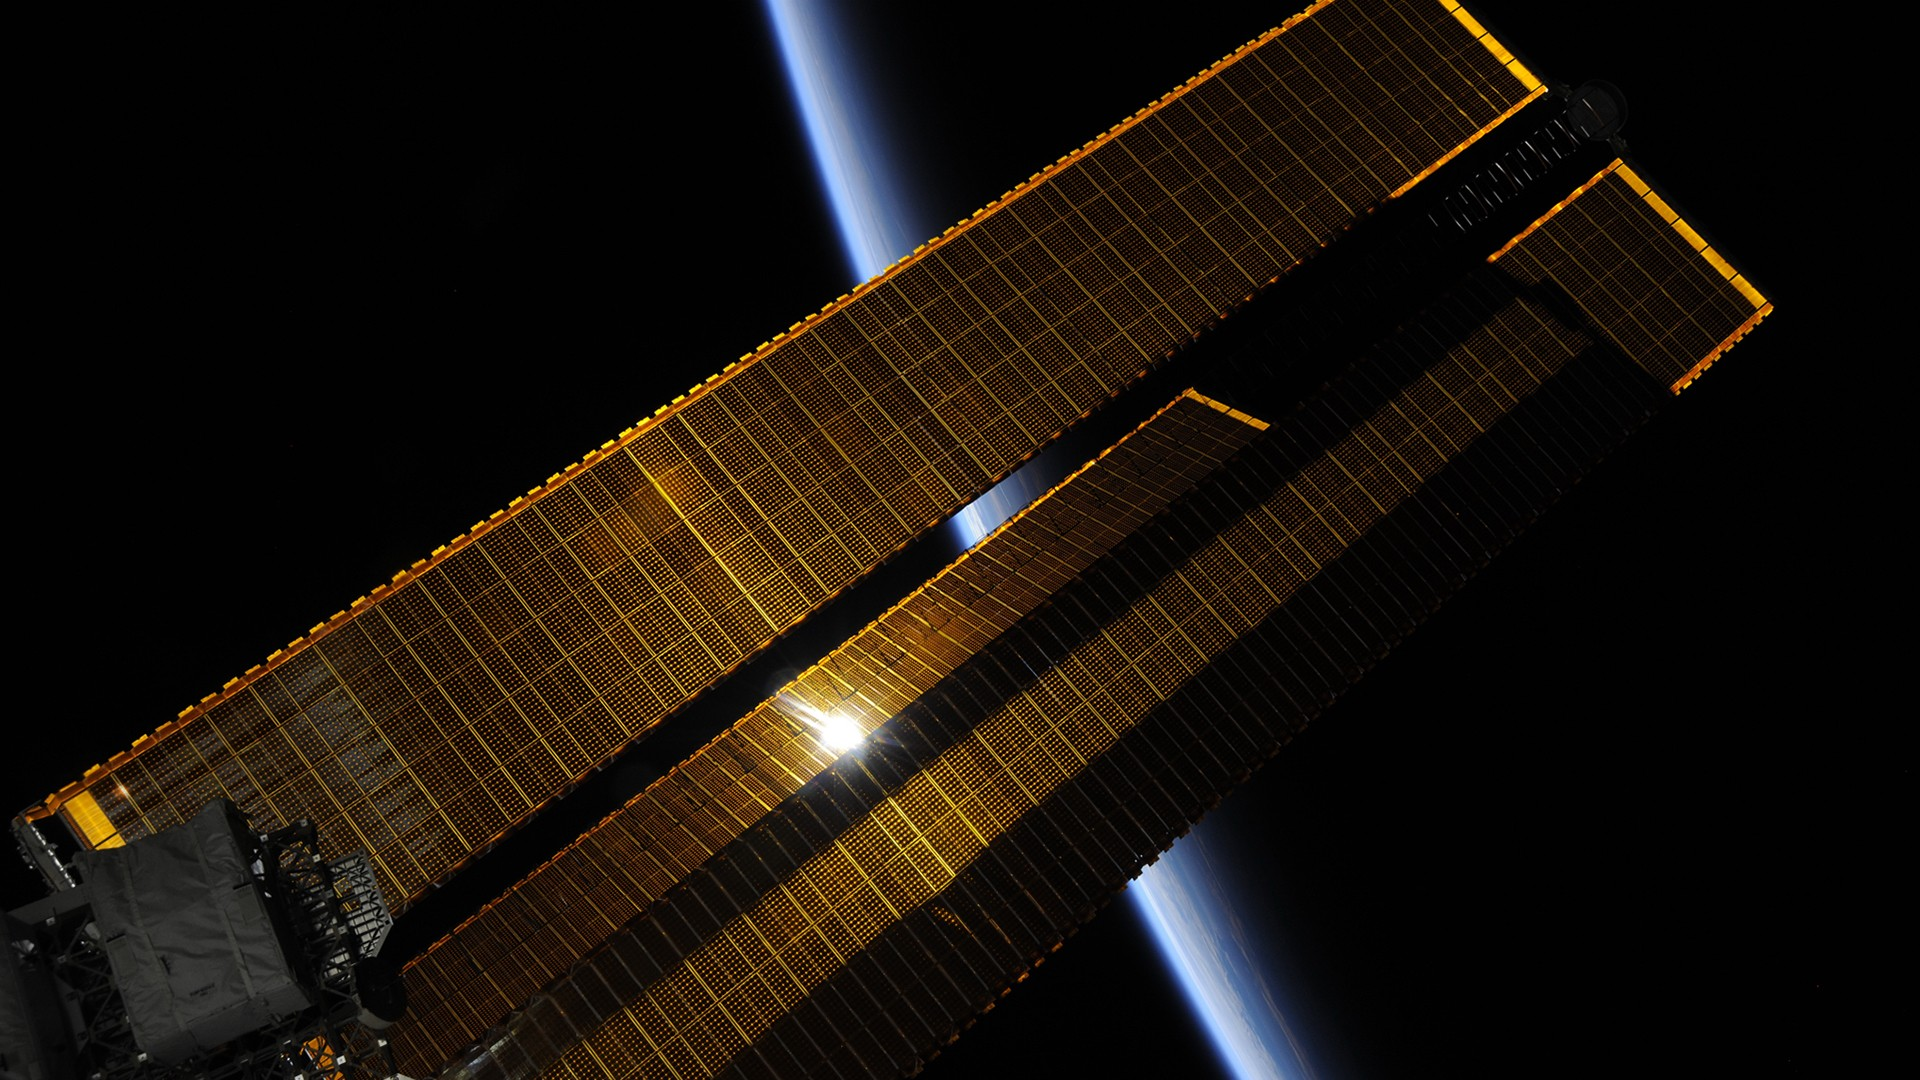 General 1920x1080 International Space Station Roscosmos State Corporation space Roscosmos Earth